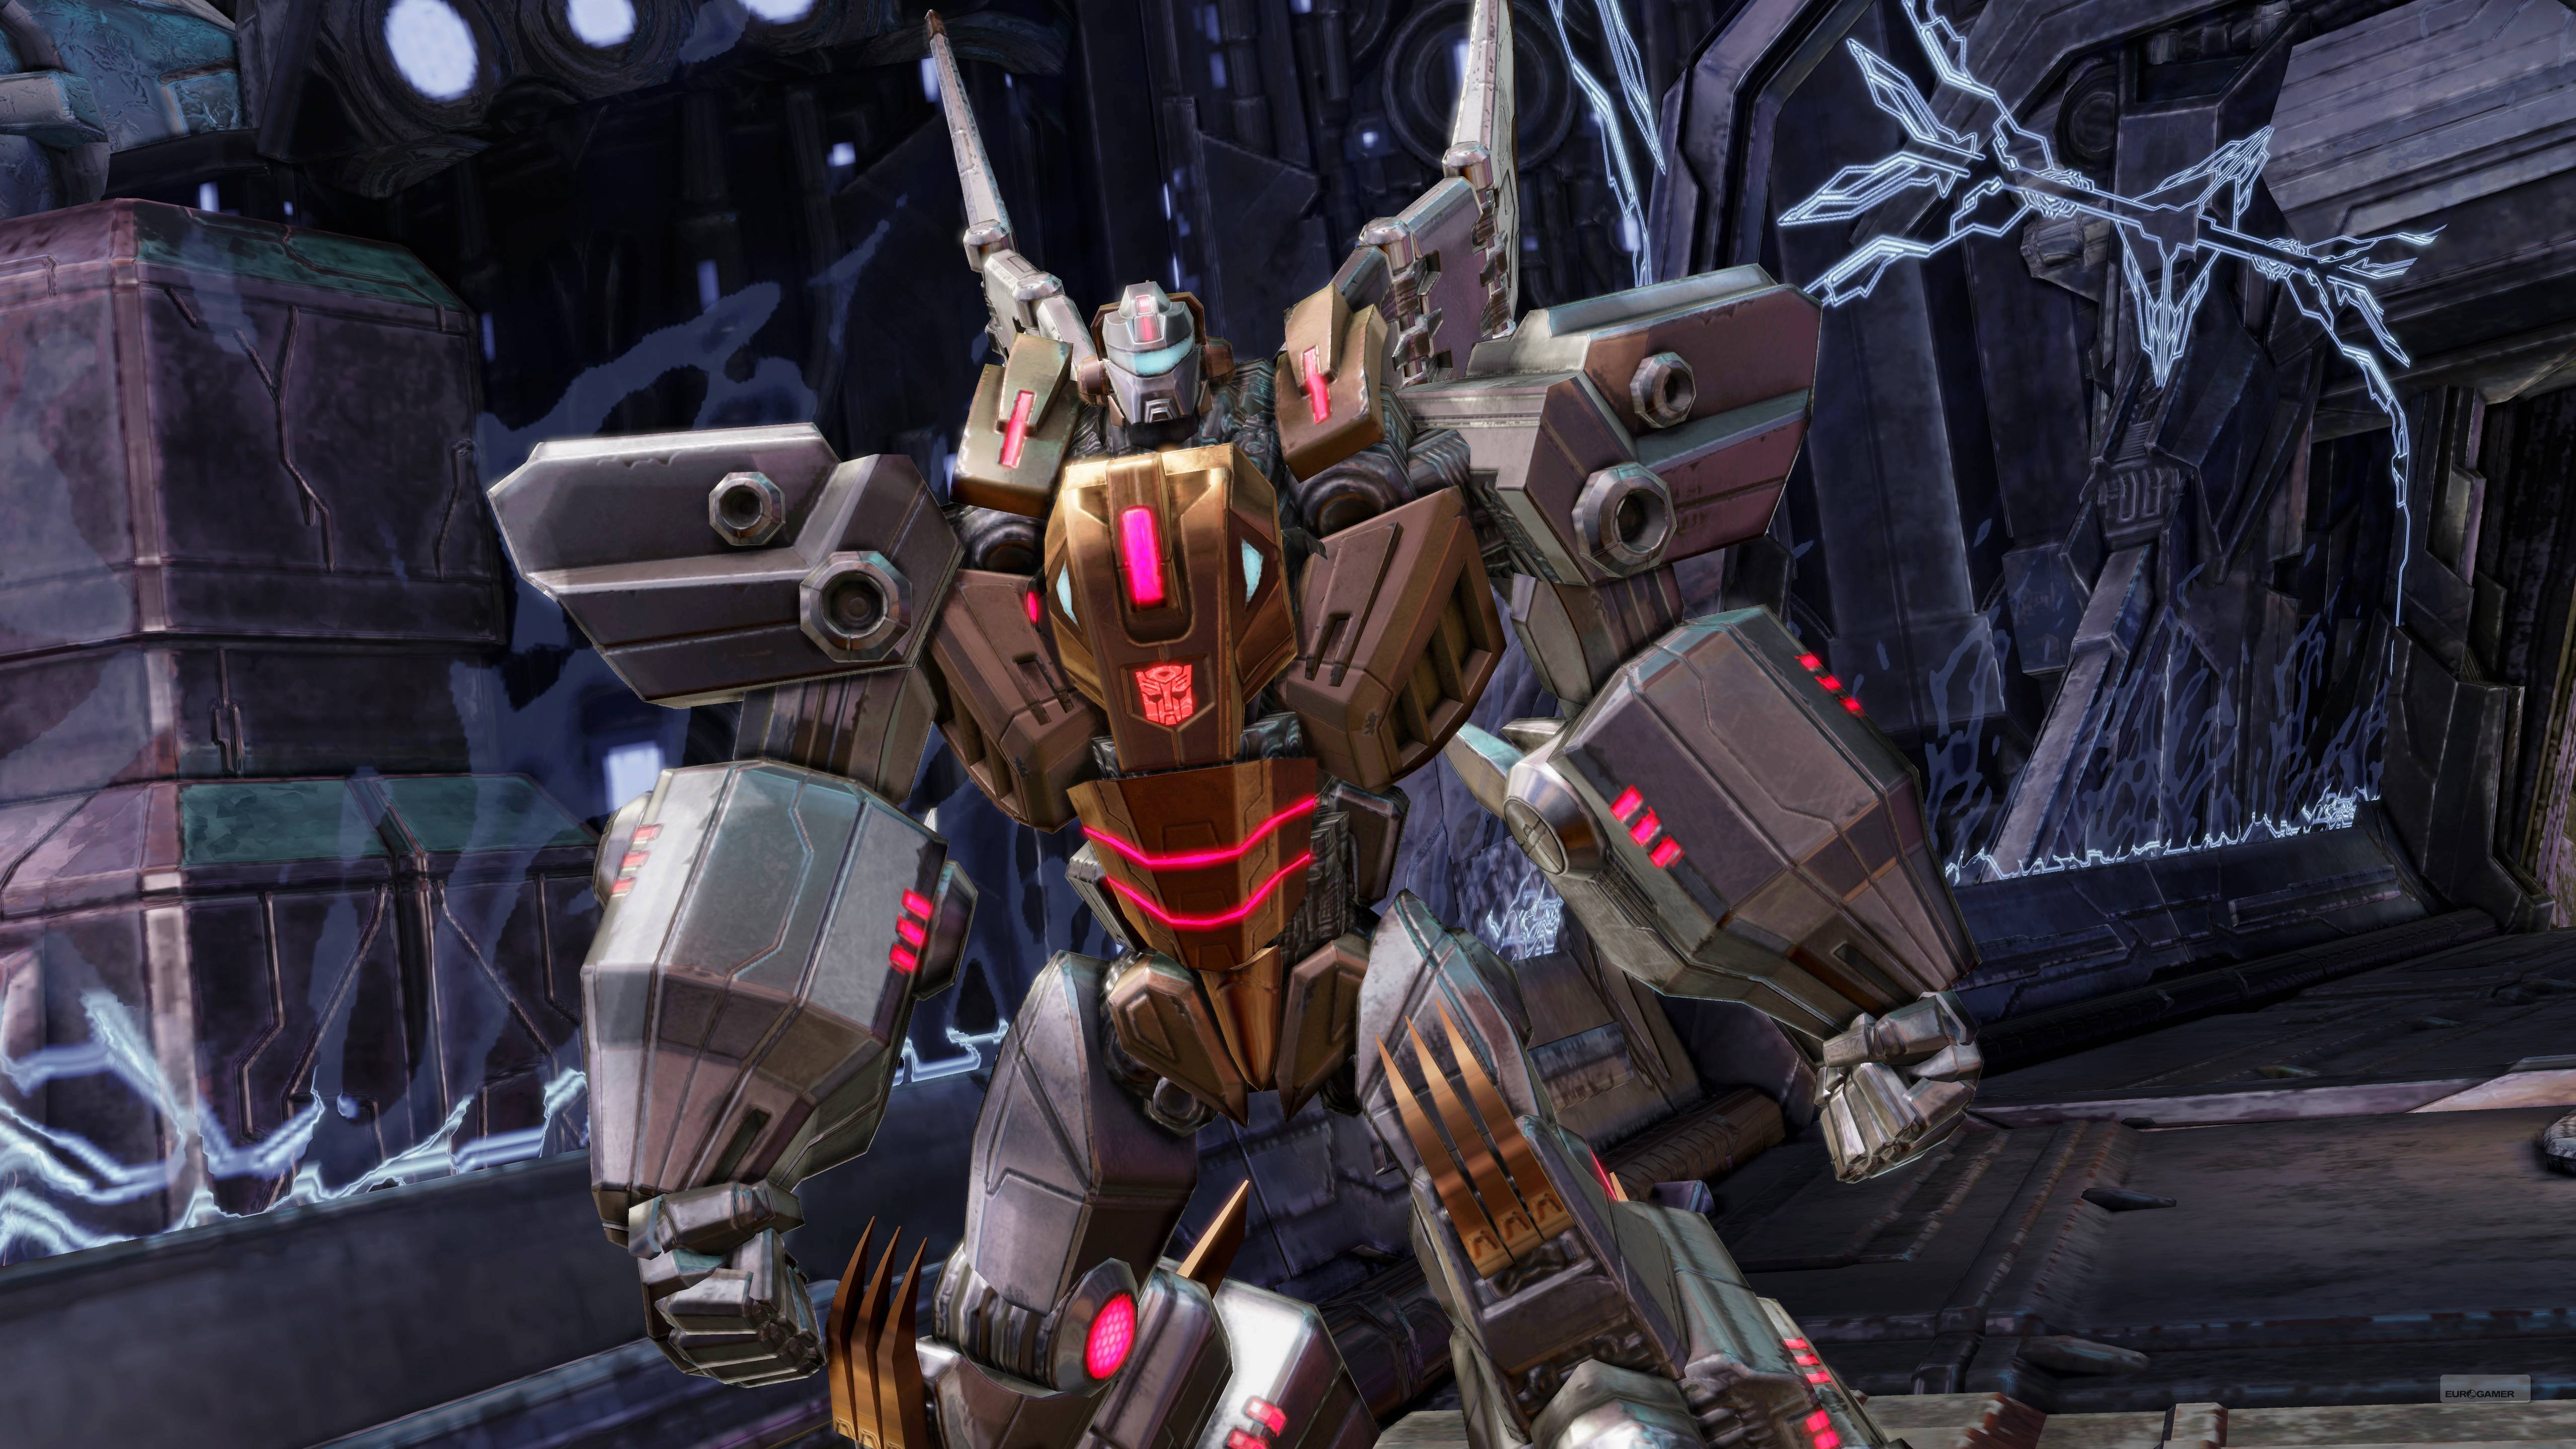 Fall of Cybertron video game wallpapers Wallpaper 61 of 111 5120x2880